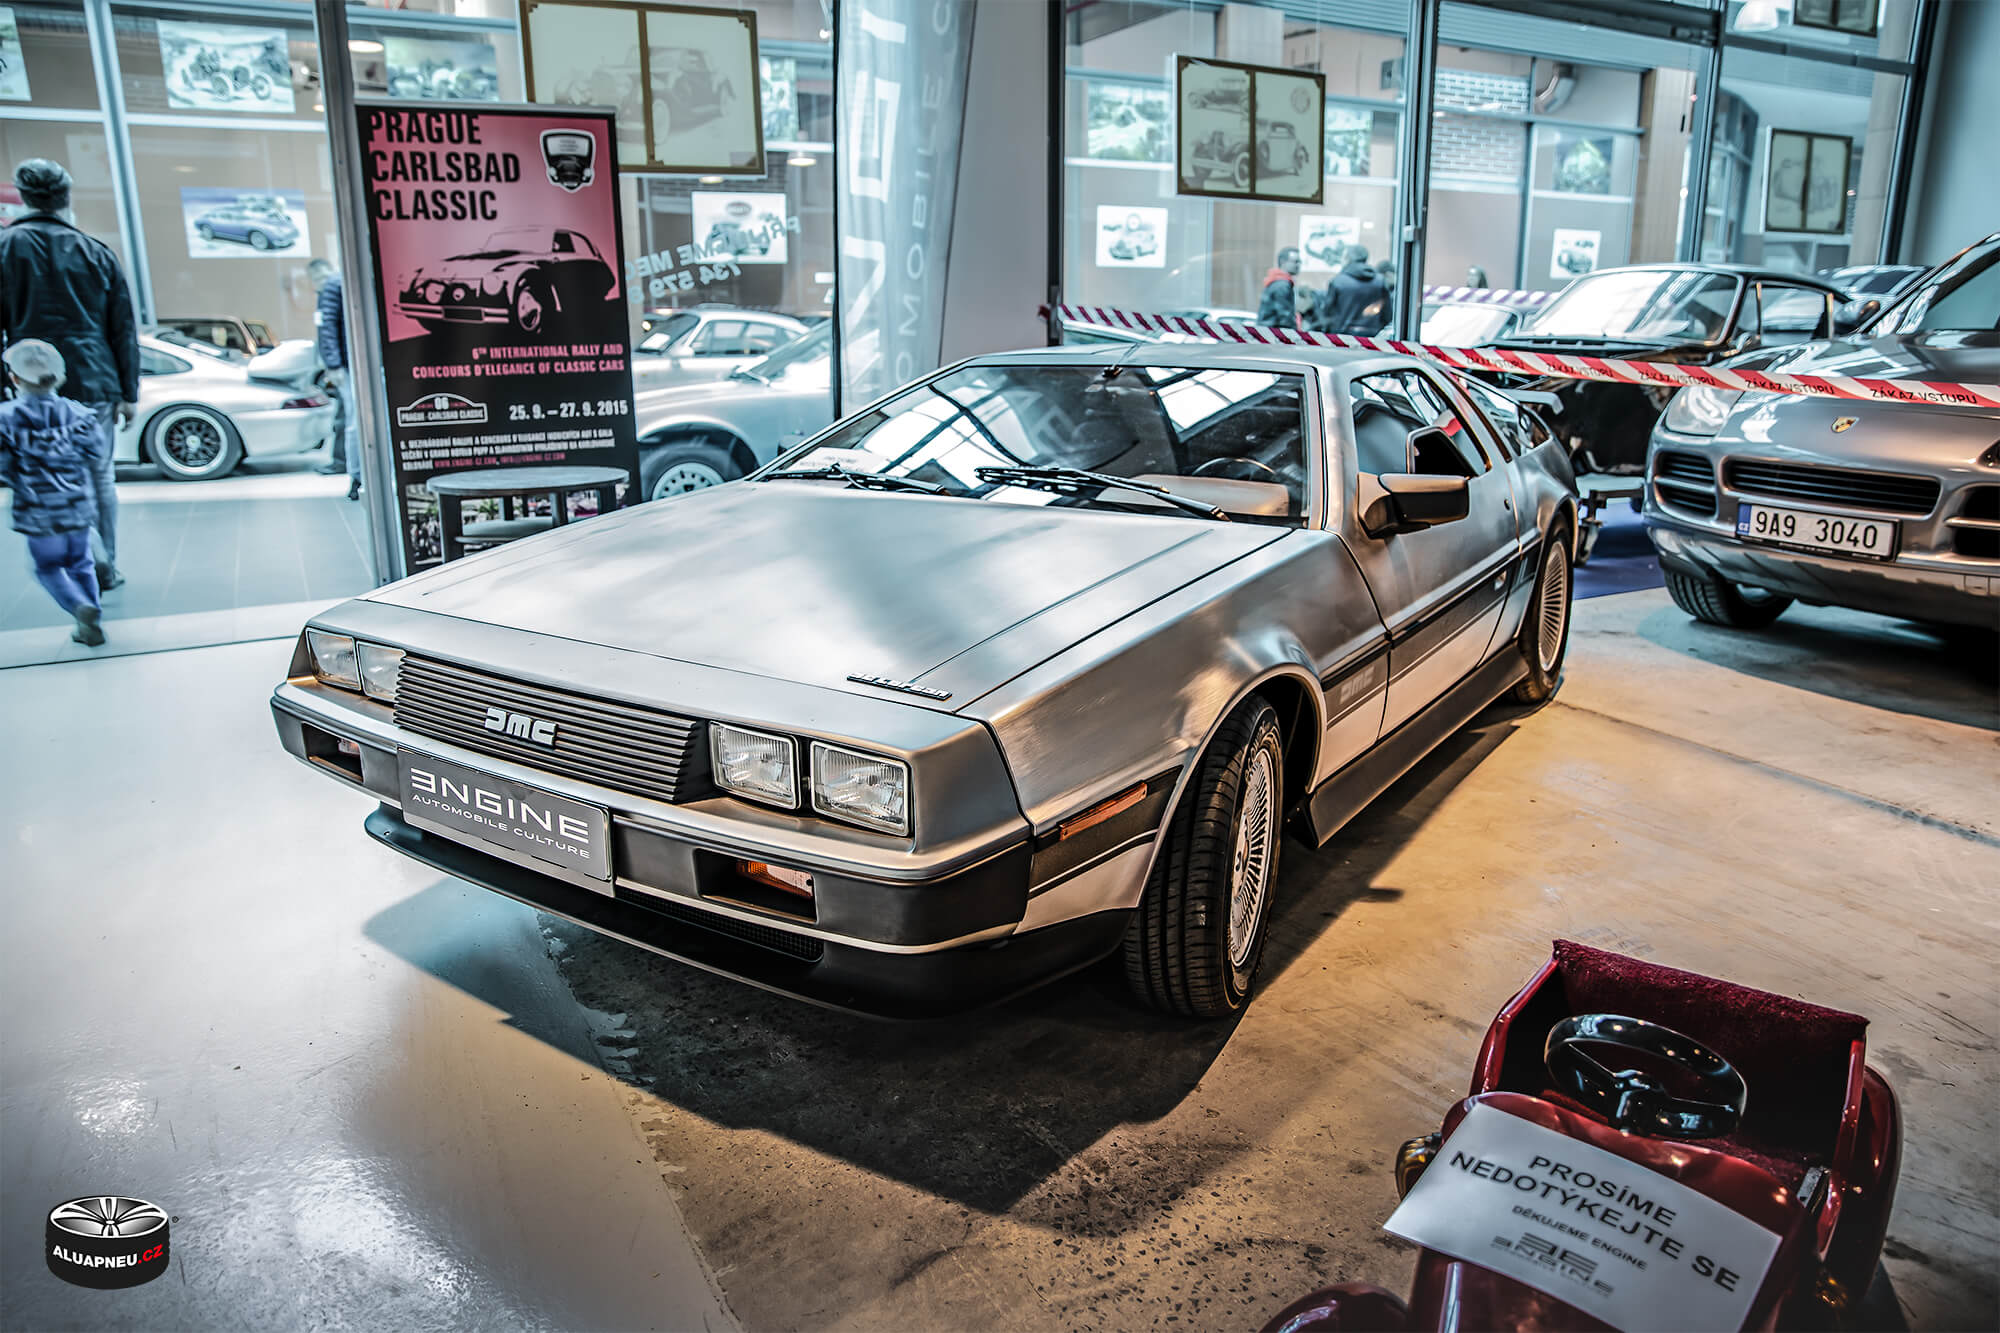 DeLorean DMC-12 - Youngtimer - www.aluapneu.cz